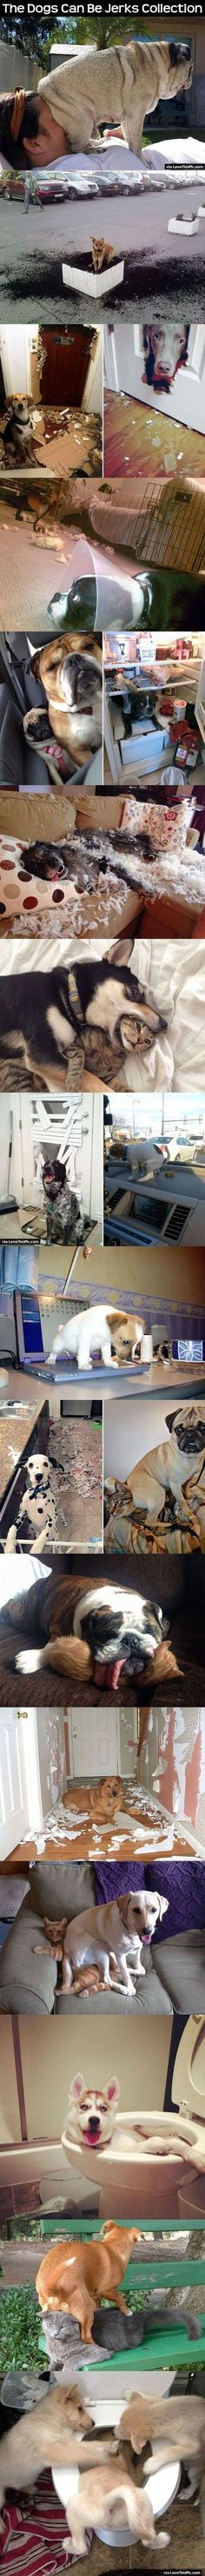 Funny dogs in trouble hilarious ideas Funny Pictures Tumblr, Funny Cat Photos, Super Funny Pictures, Funny Animal Pictures, Cute Funny Animals, Funny Cute, Funny Babies, Funny Dogs, Teach Dog Tricks